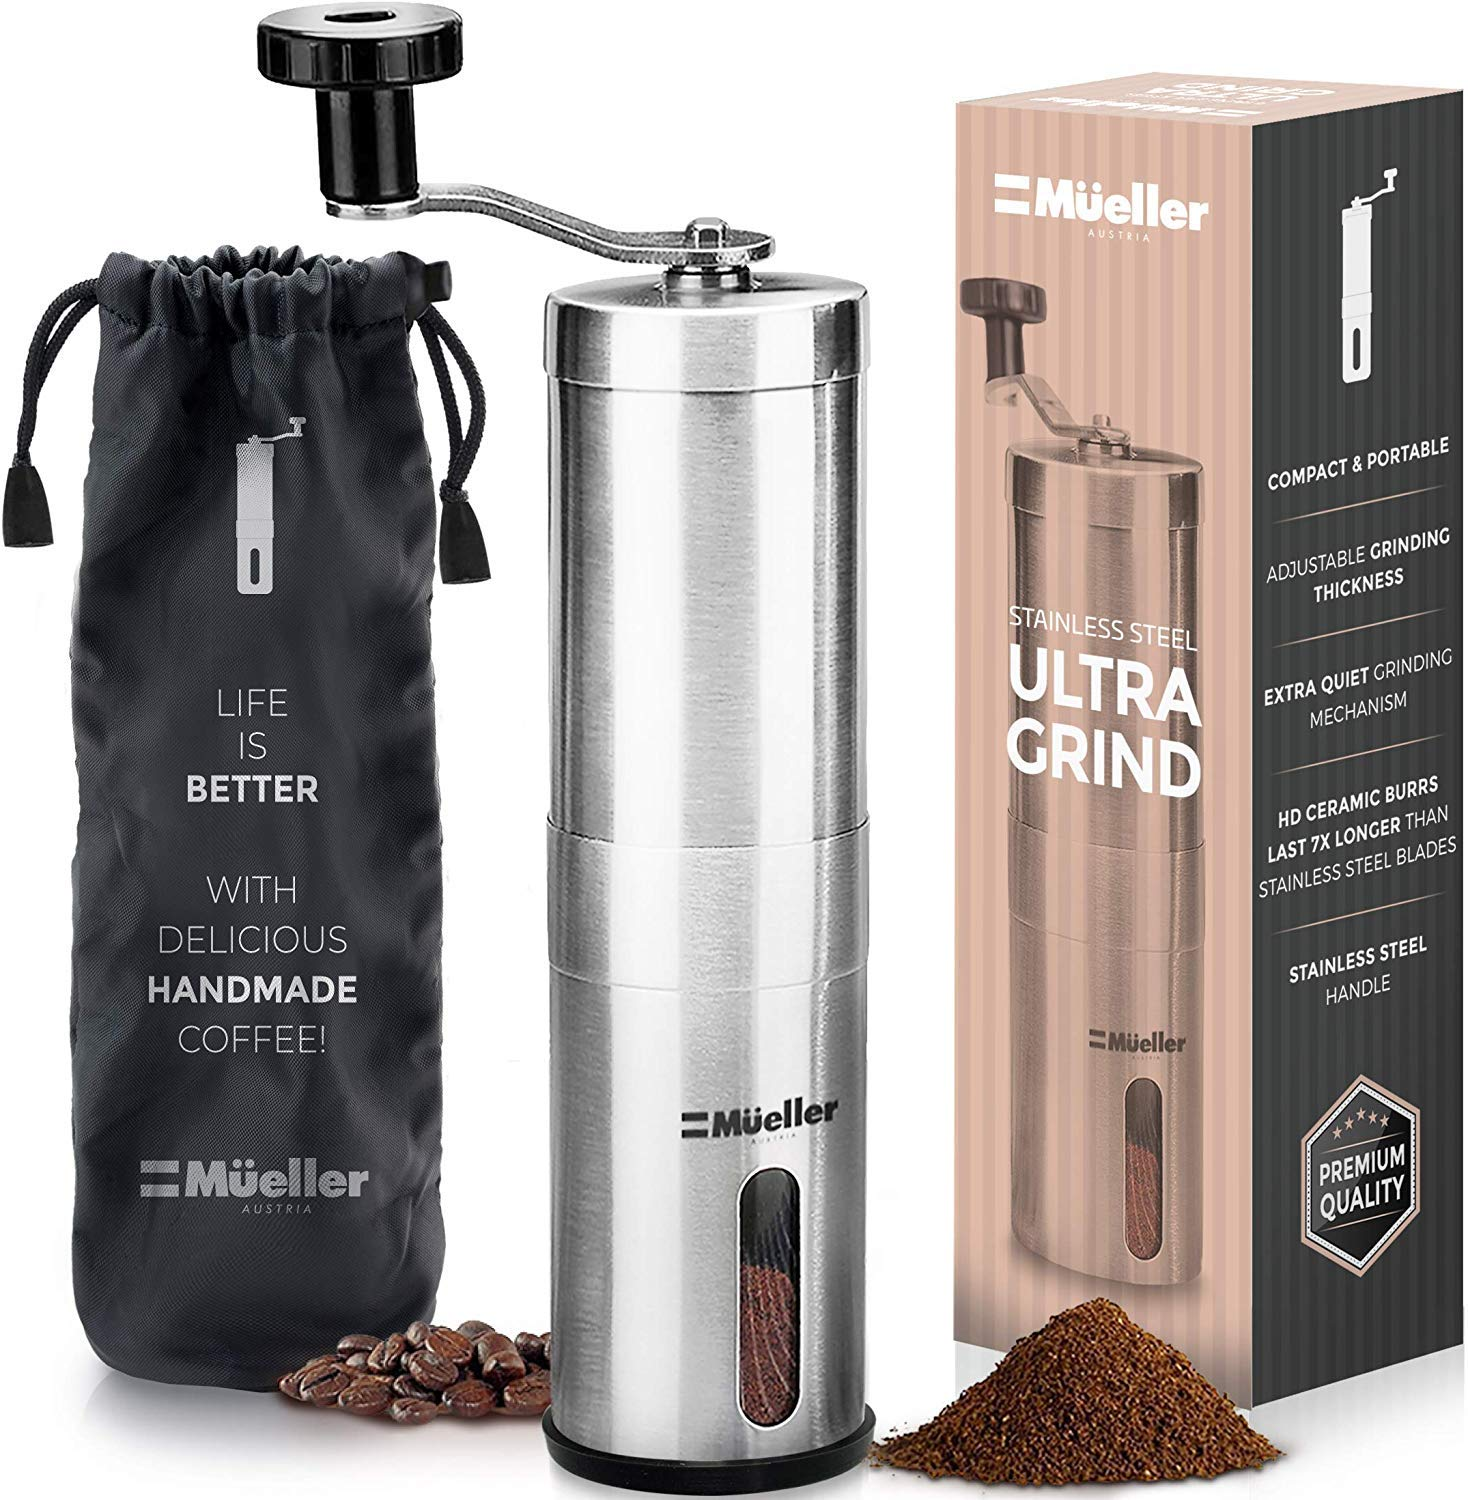 Mueller Austria Manual Coffee Grinder, Whole Bean Conical Burr Mill for French Press/Turkish-Strongest and Heaviest Duty, Packaging May Vary, Hand Size, Brushed Stainless Steel by Mueller Austria